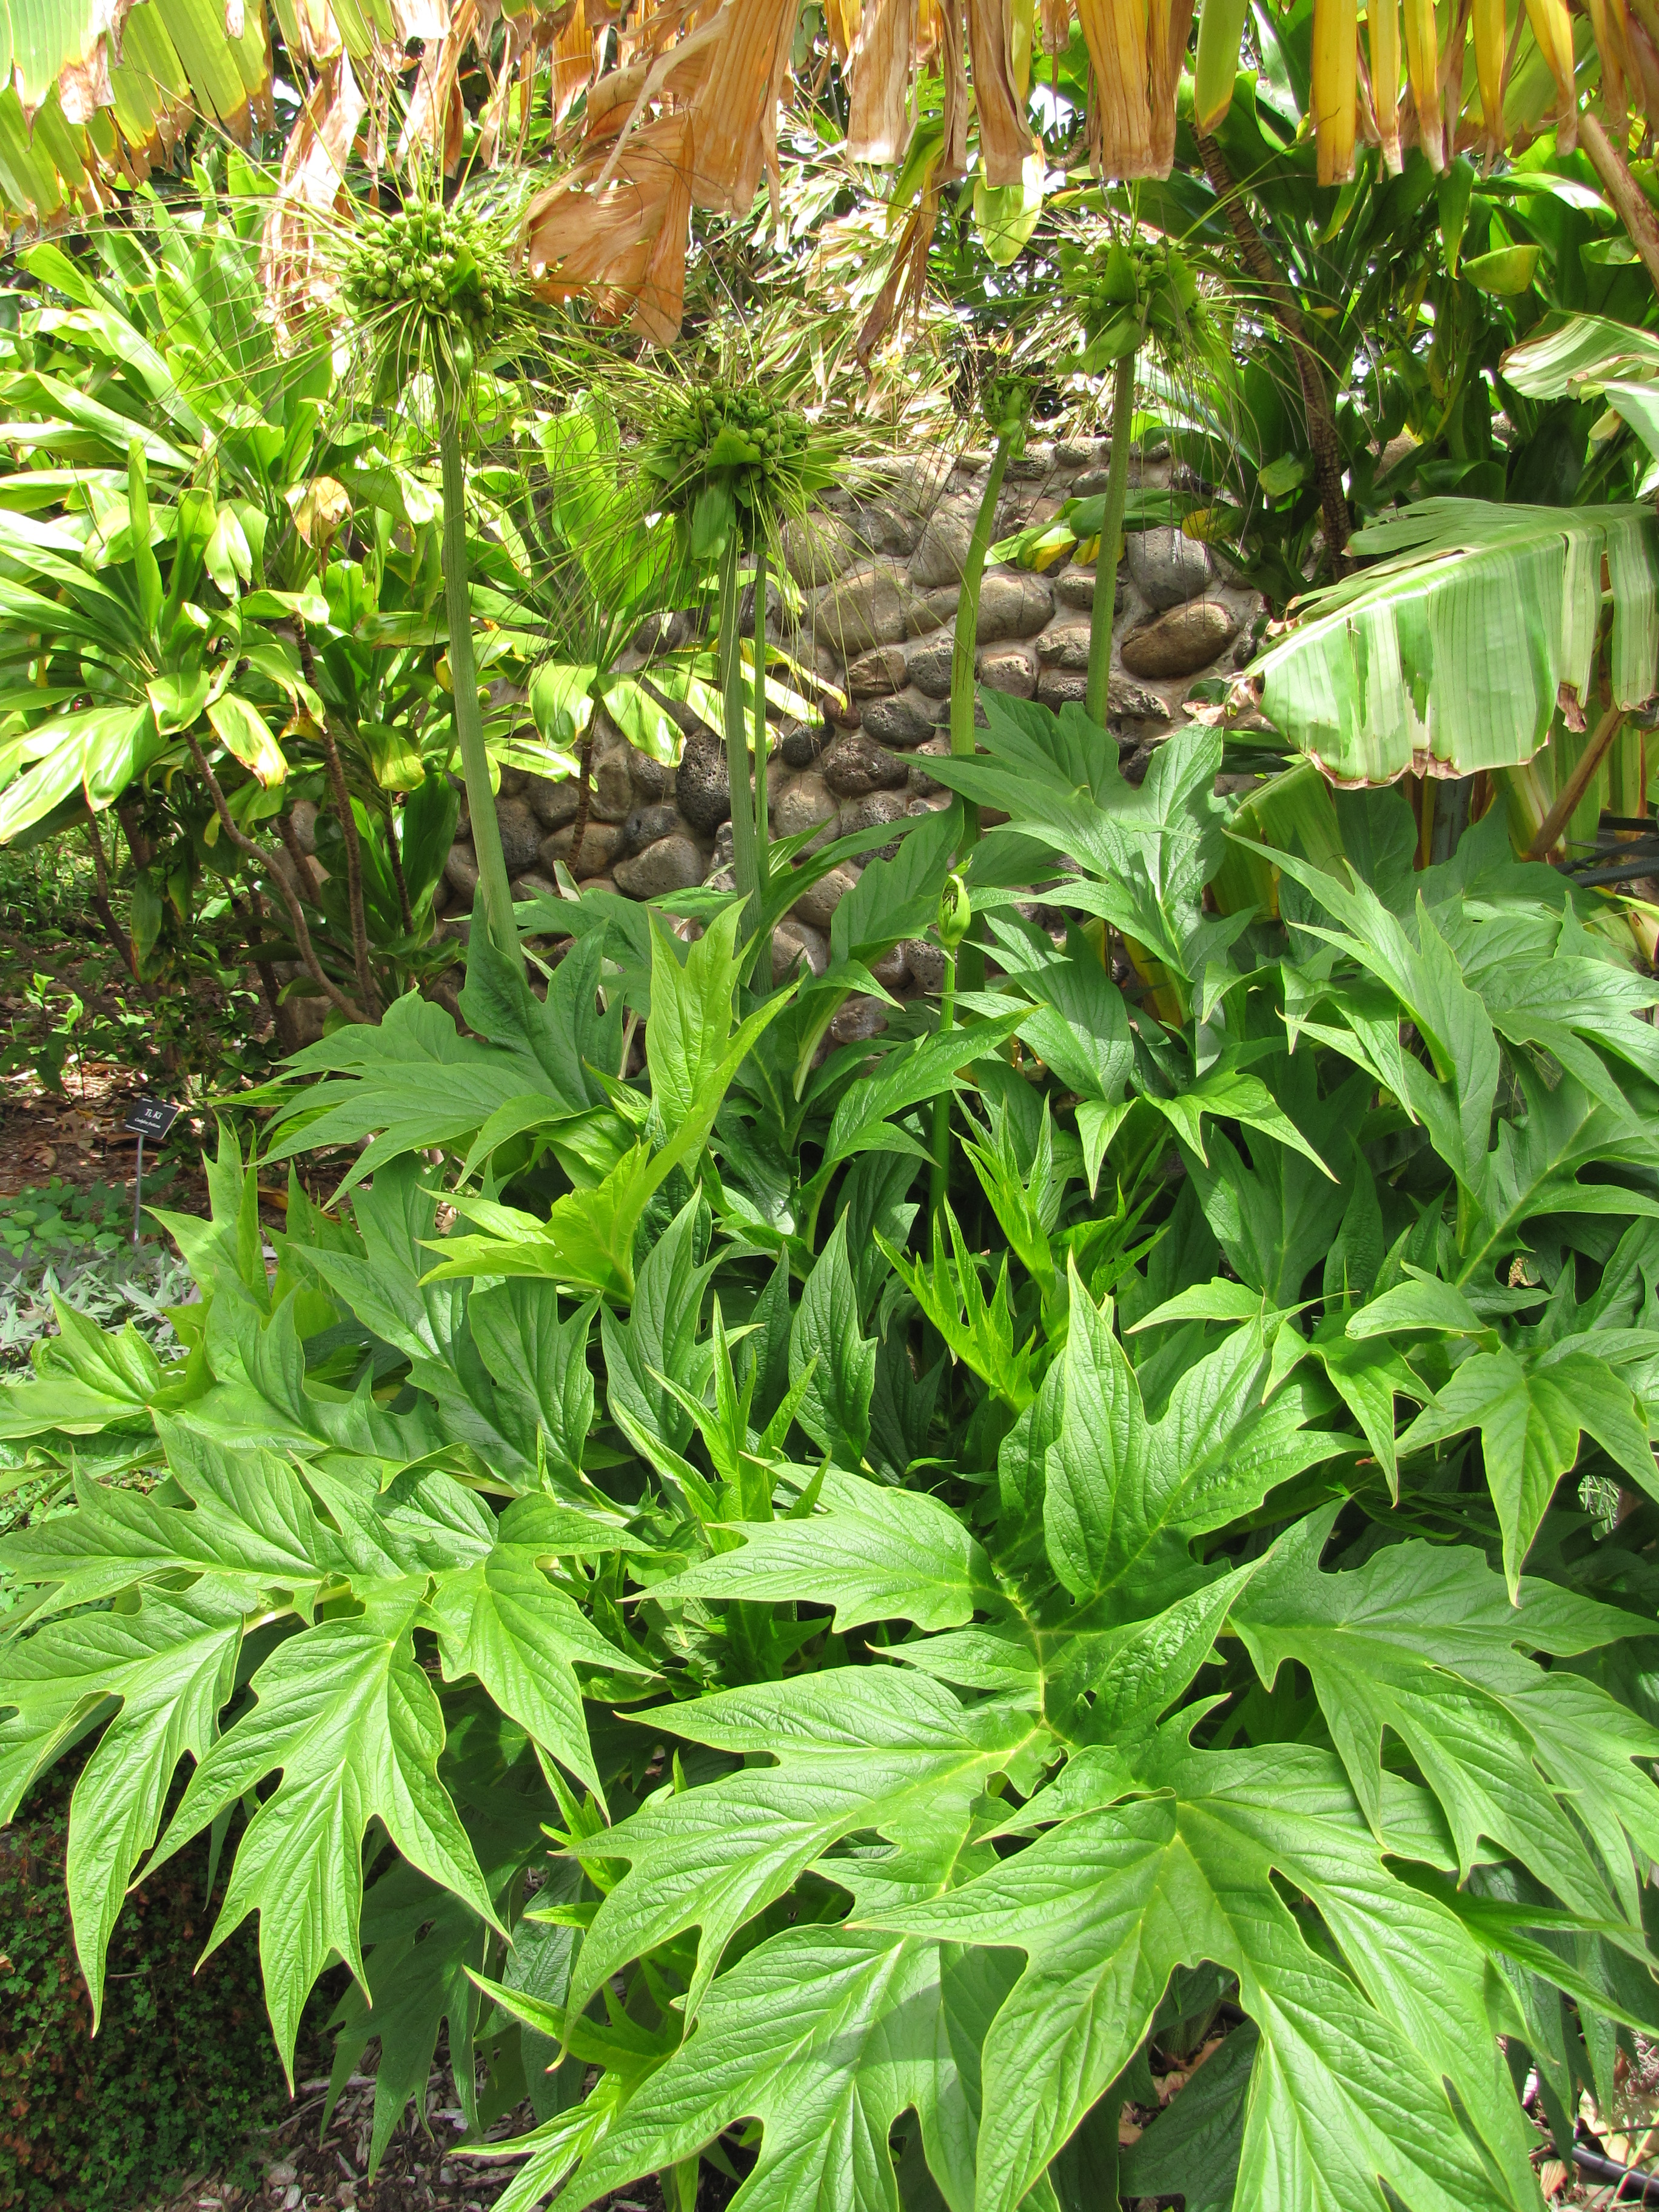 Dypsis Lutescens Useful Tropical Plants Tacca Leontopetaloides Images Useful Tropical Plants